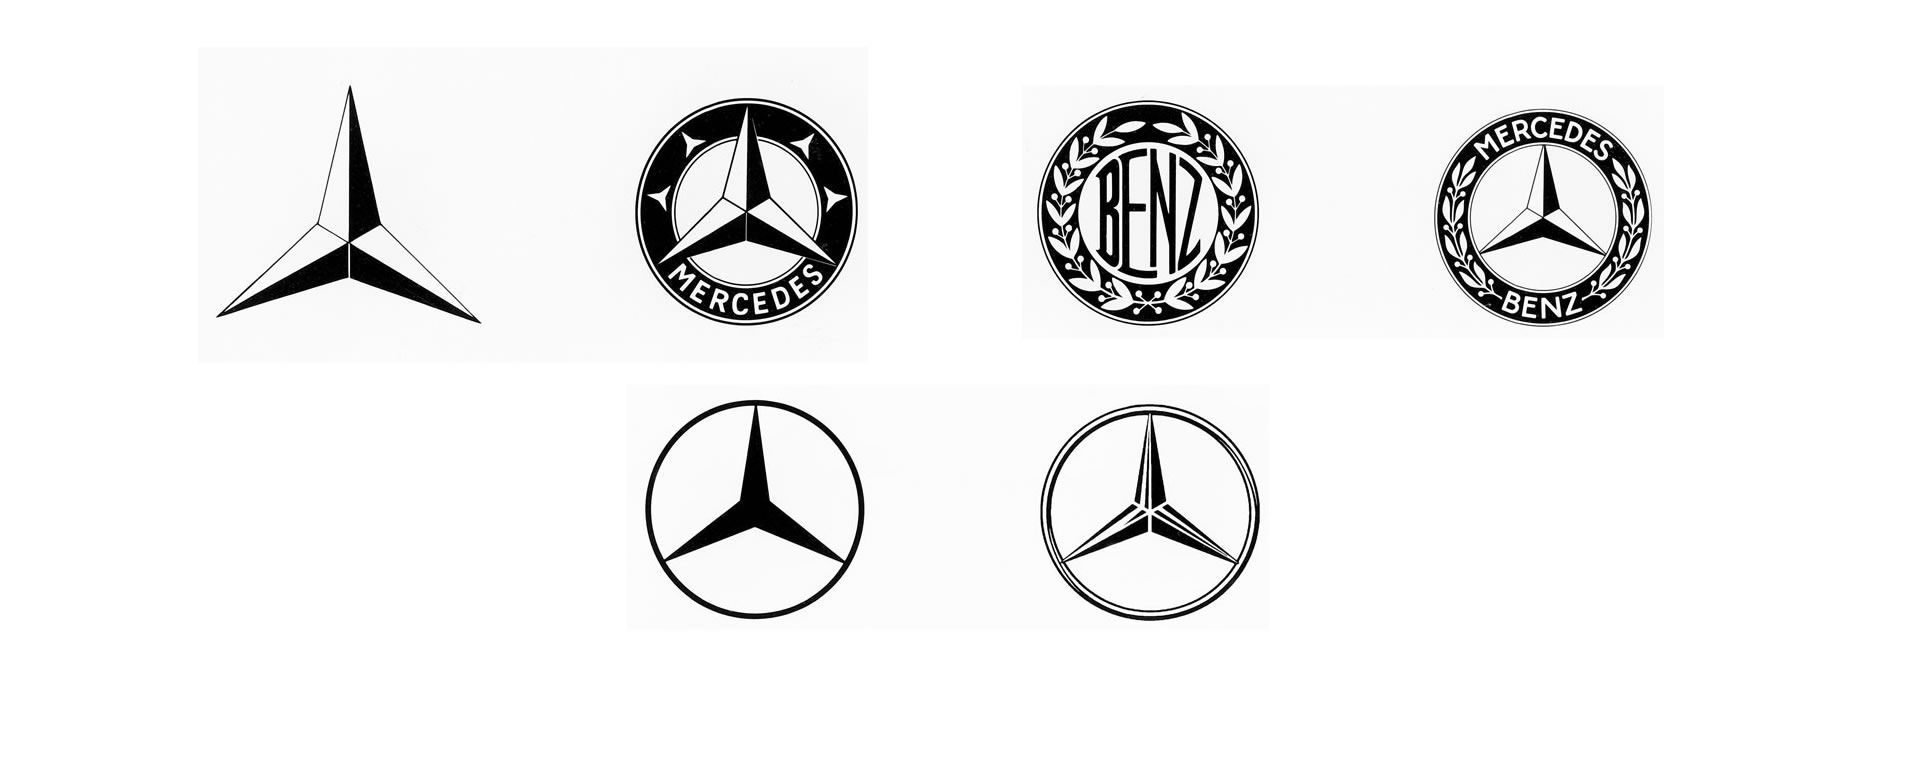 1000 images about history of the mercedes benz brand on pinterest logos grand prix and gottlieb daimler - Mercedes Benz Logo Transparent Background